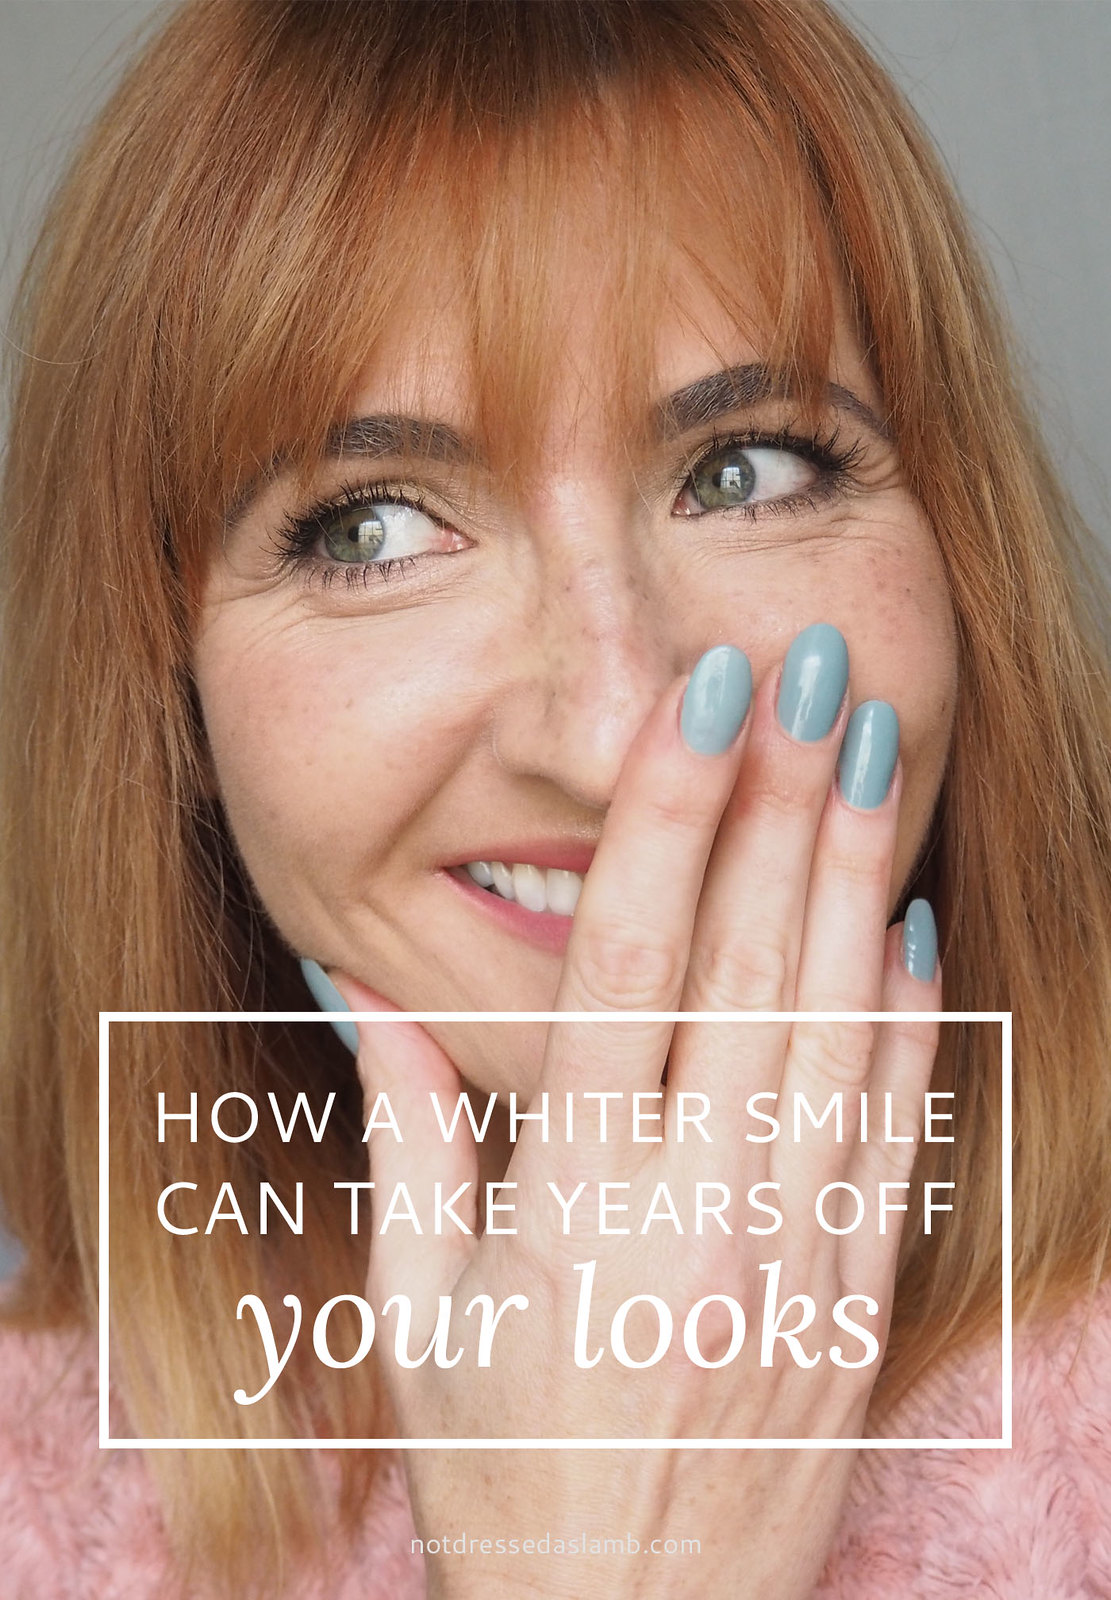 How a Whiter Smile Can Take Years Off Your Looks: | A review of Philips Zoom teeth whitening | Not Dressed As Lamb, over style blog